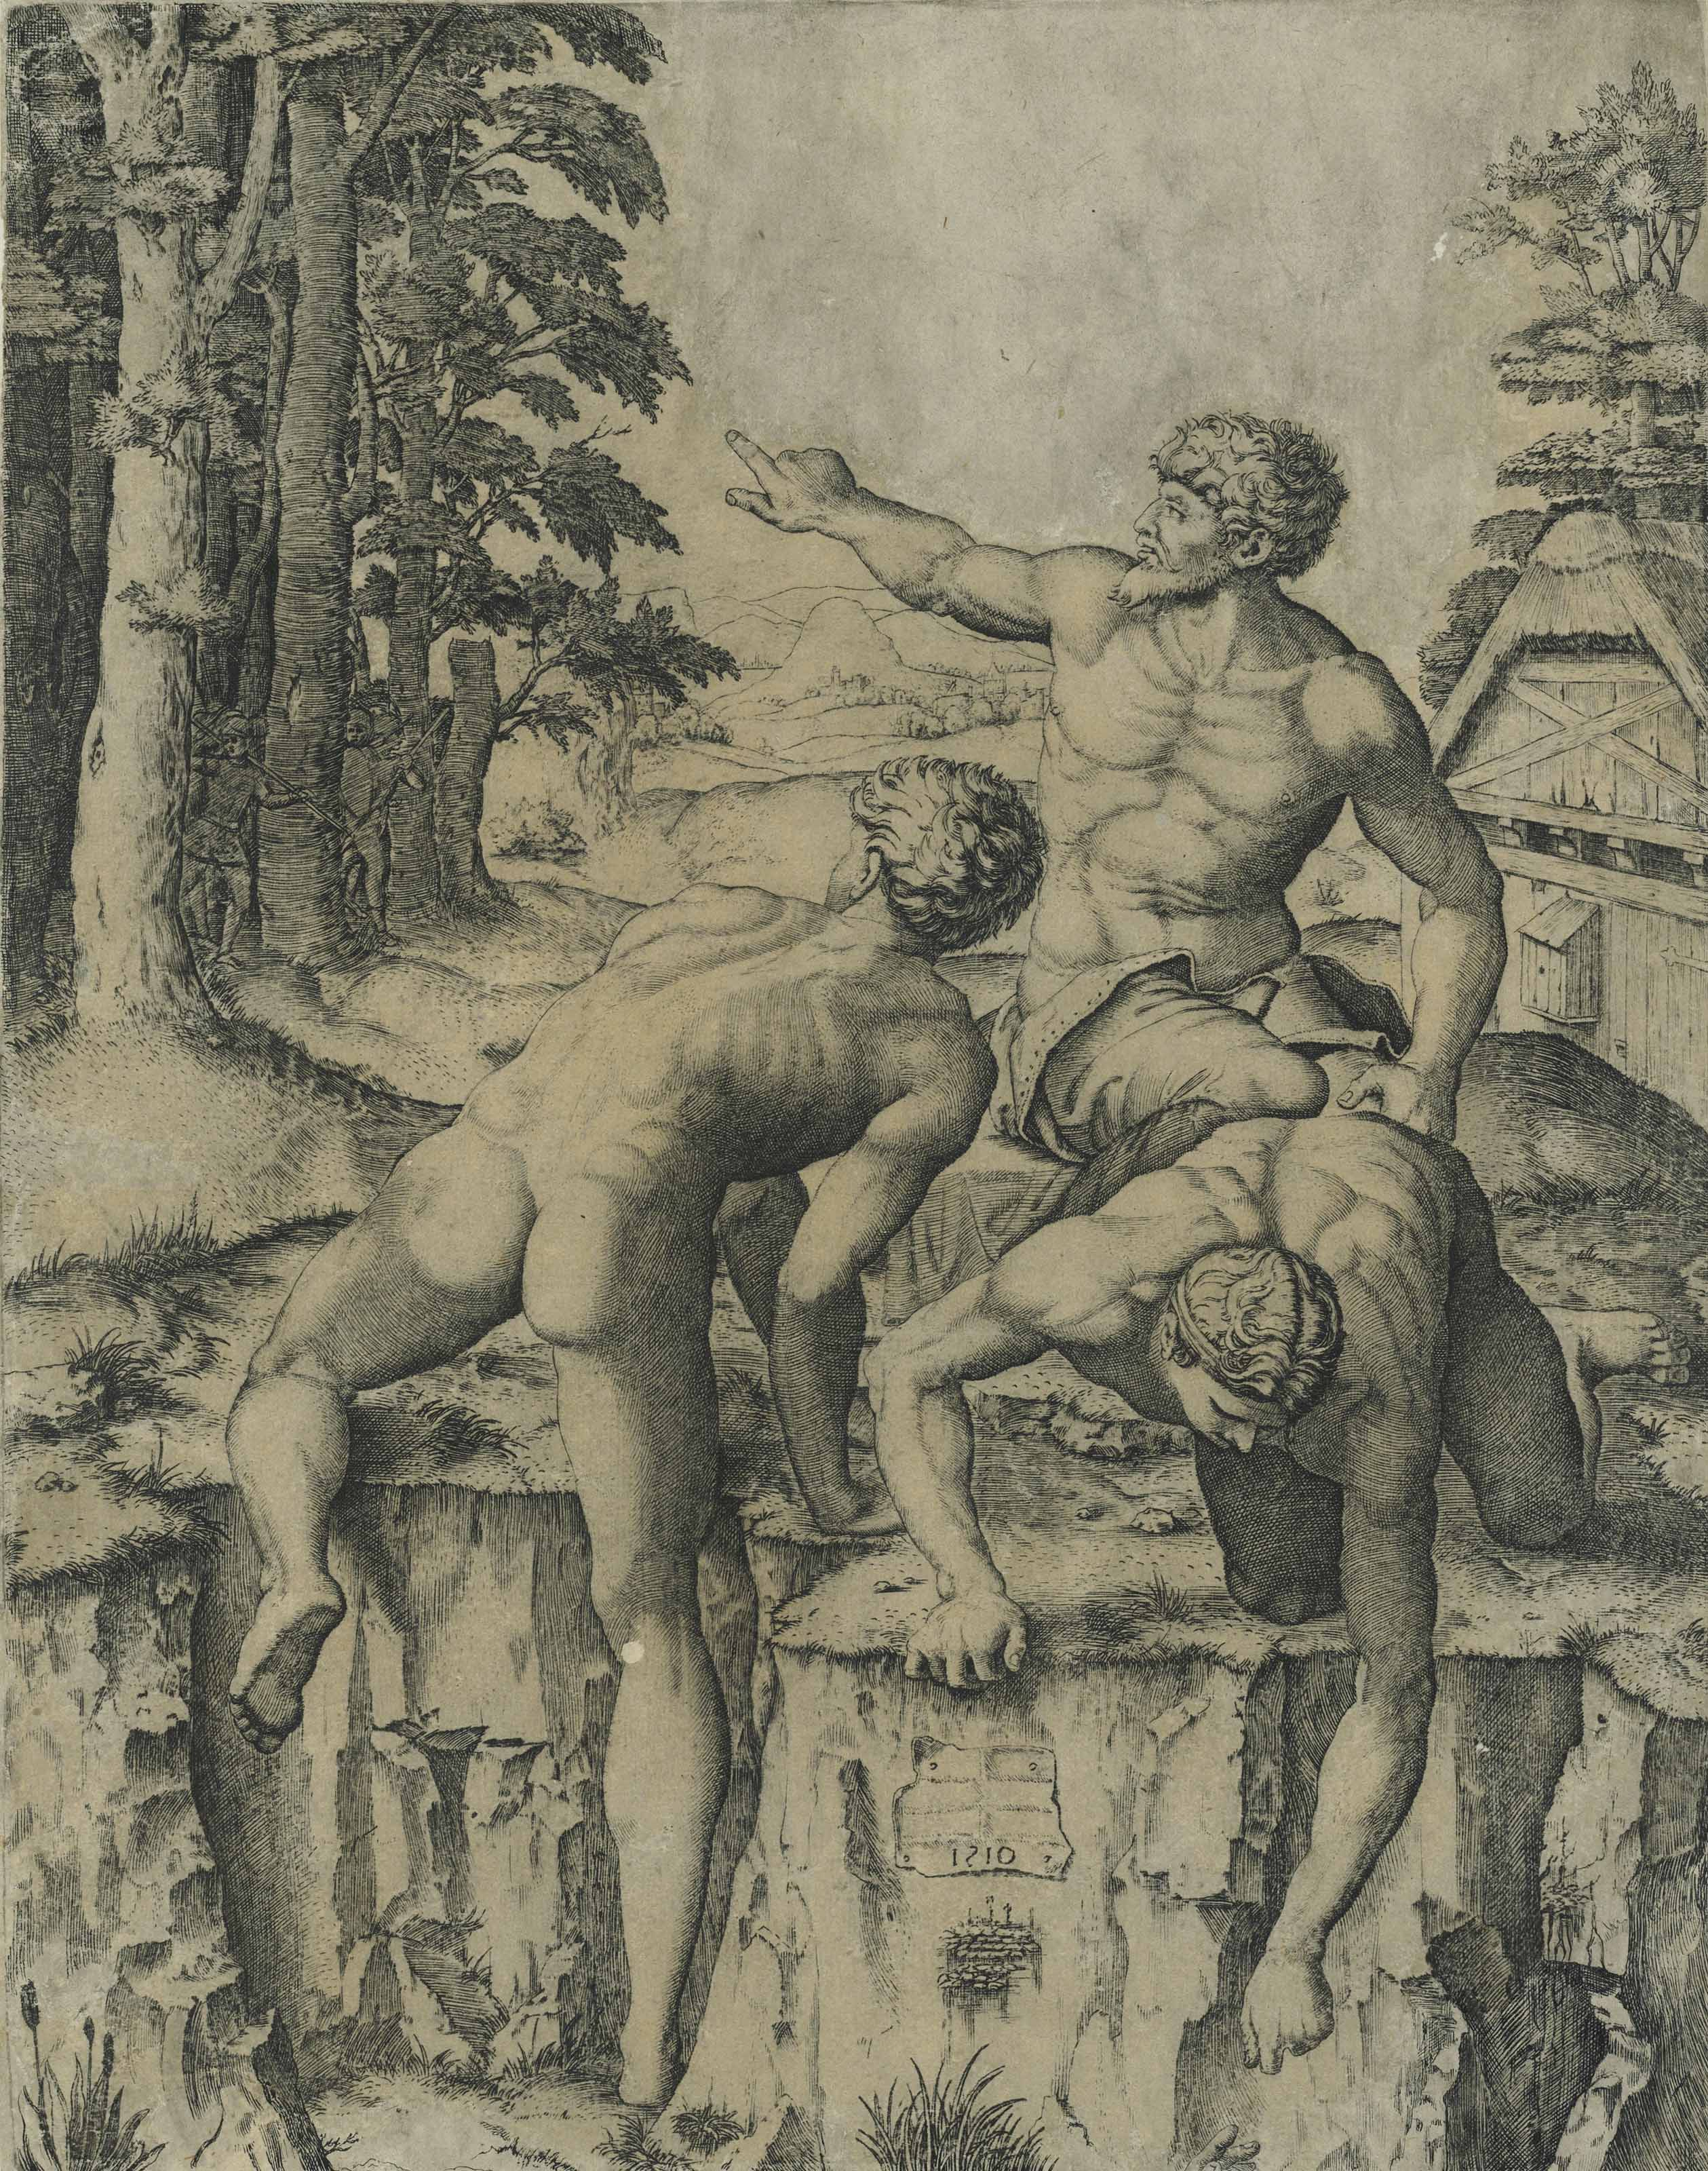 Marcantonio Raimondi (1480-1534) after Michelangelo Buonarotti (1475-1564) and Lucas van Leyden (1494-1533), The Climbers, 1510. Engraving on laid paper. Sheet 284 x 224 mm. Sold for £4,750 on 14 December 2017 at Christie's in London